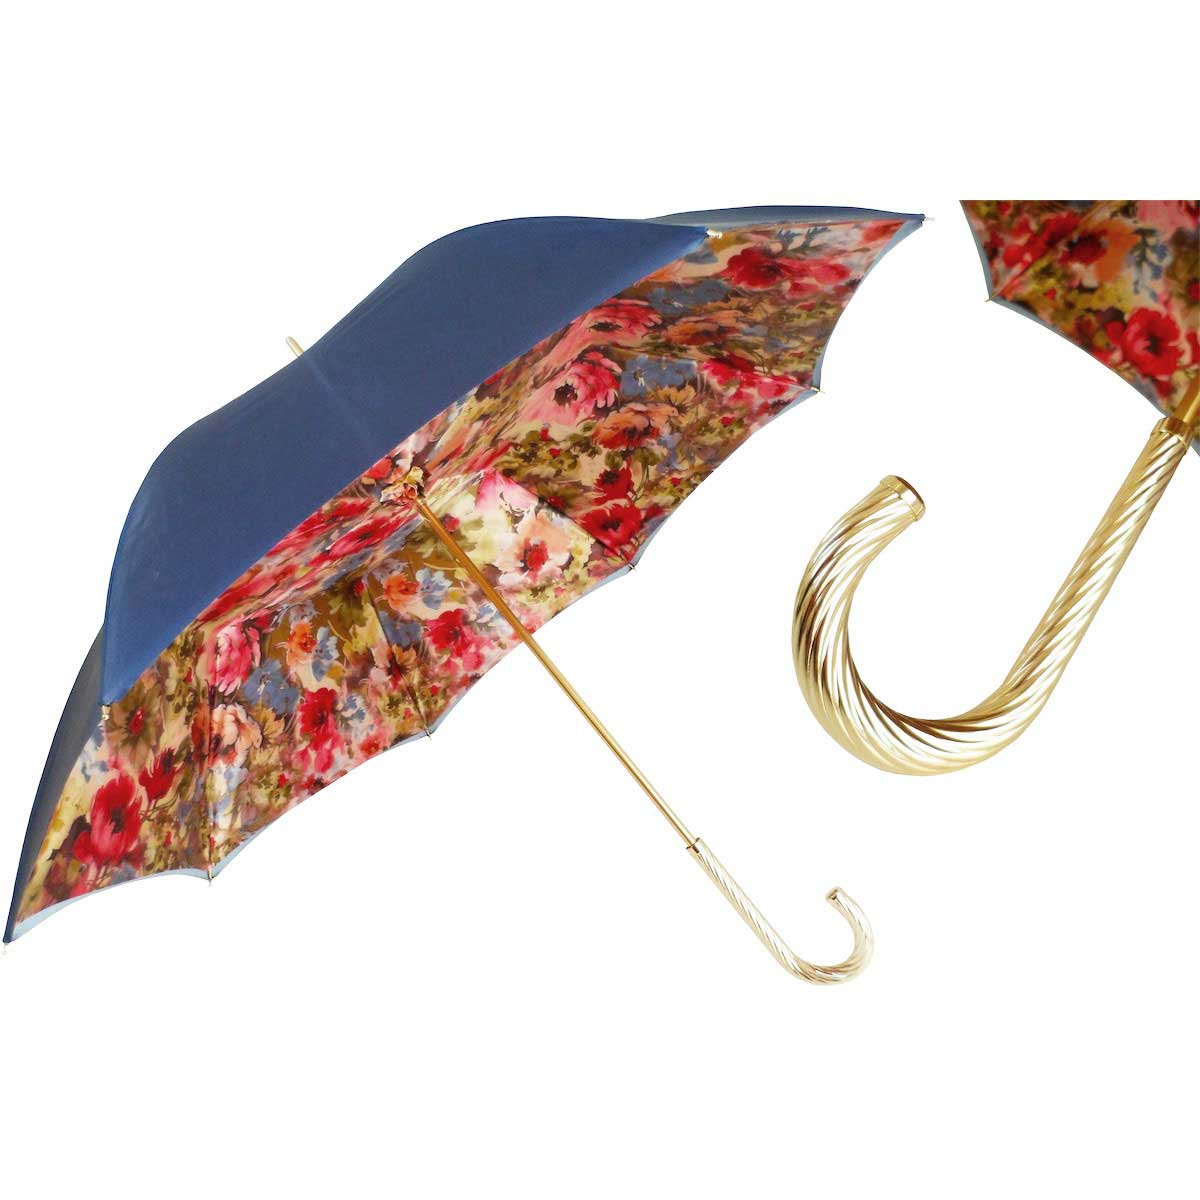 Pasotti Blue with Internal Flowers Women's Umbrella